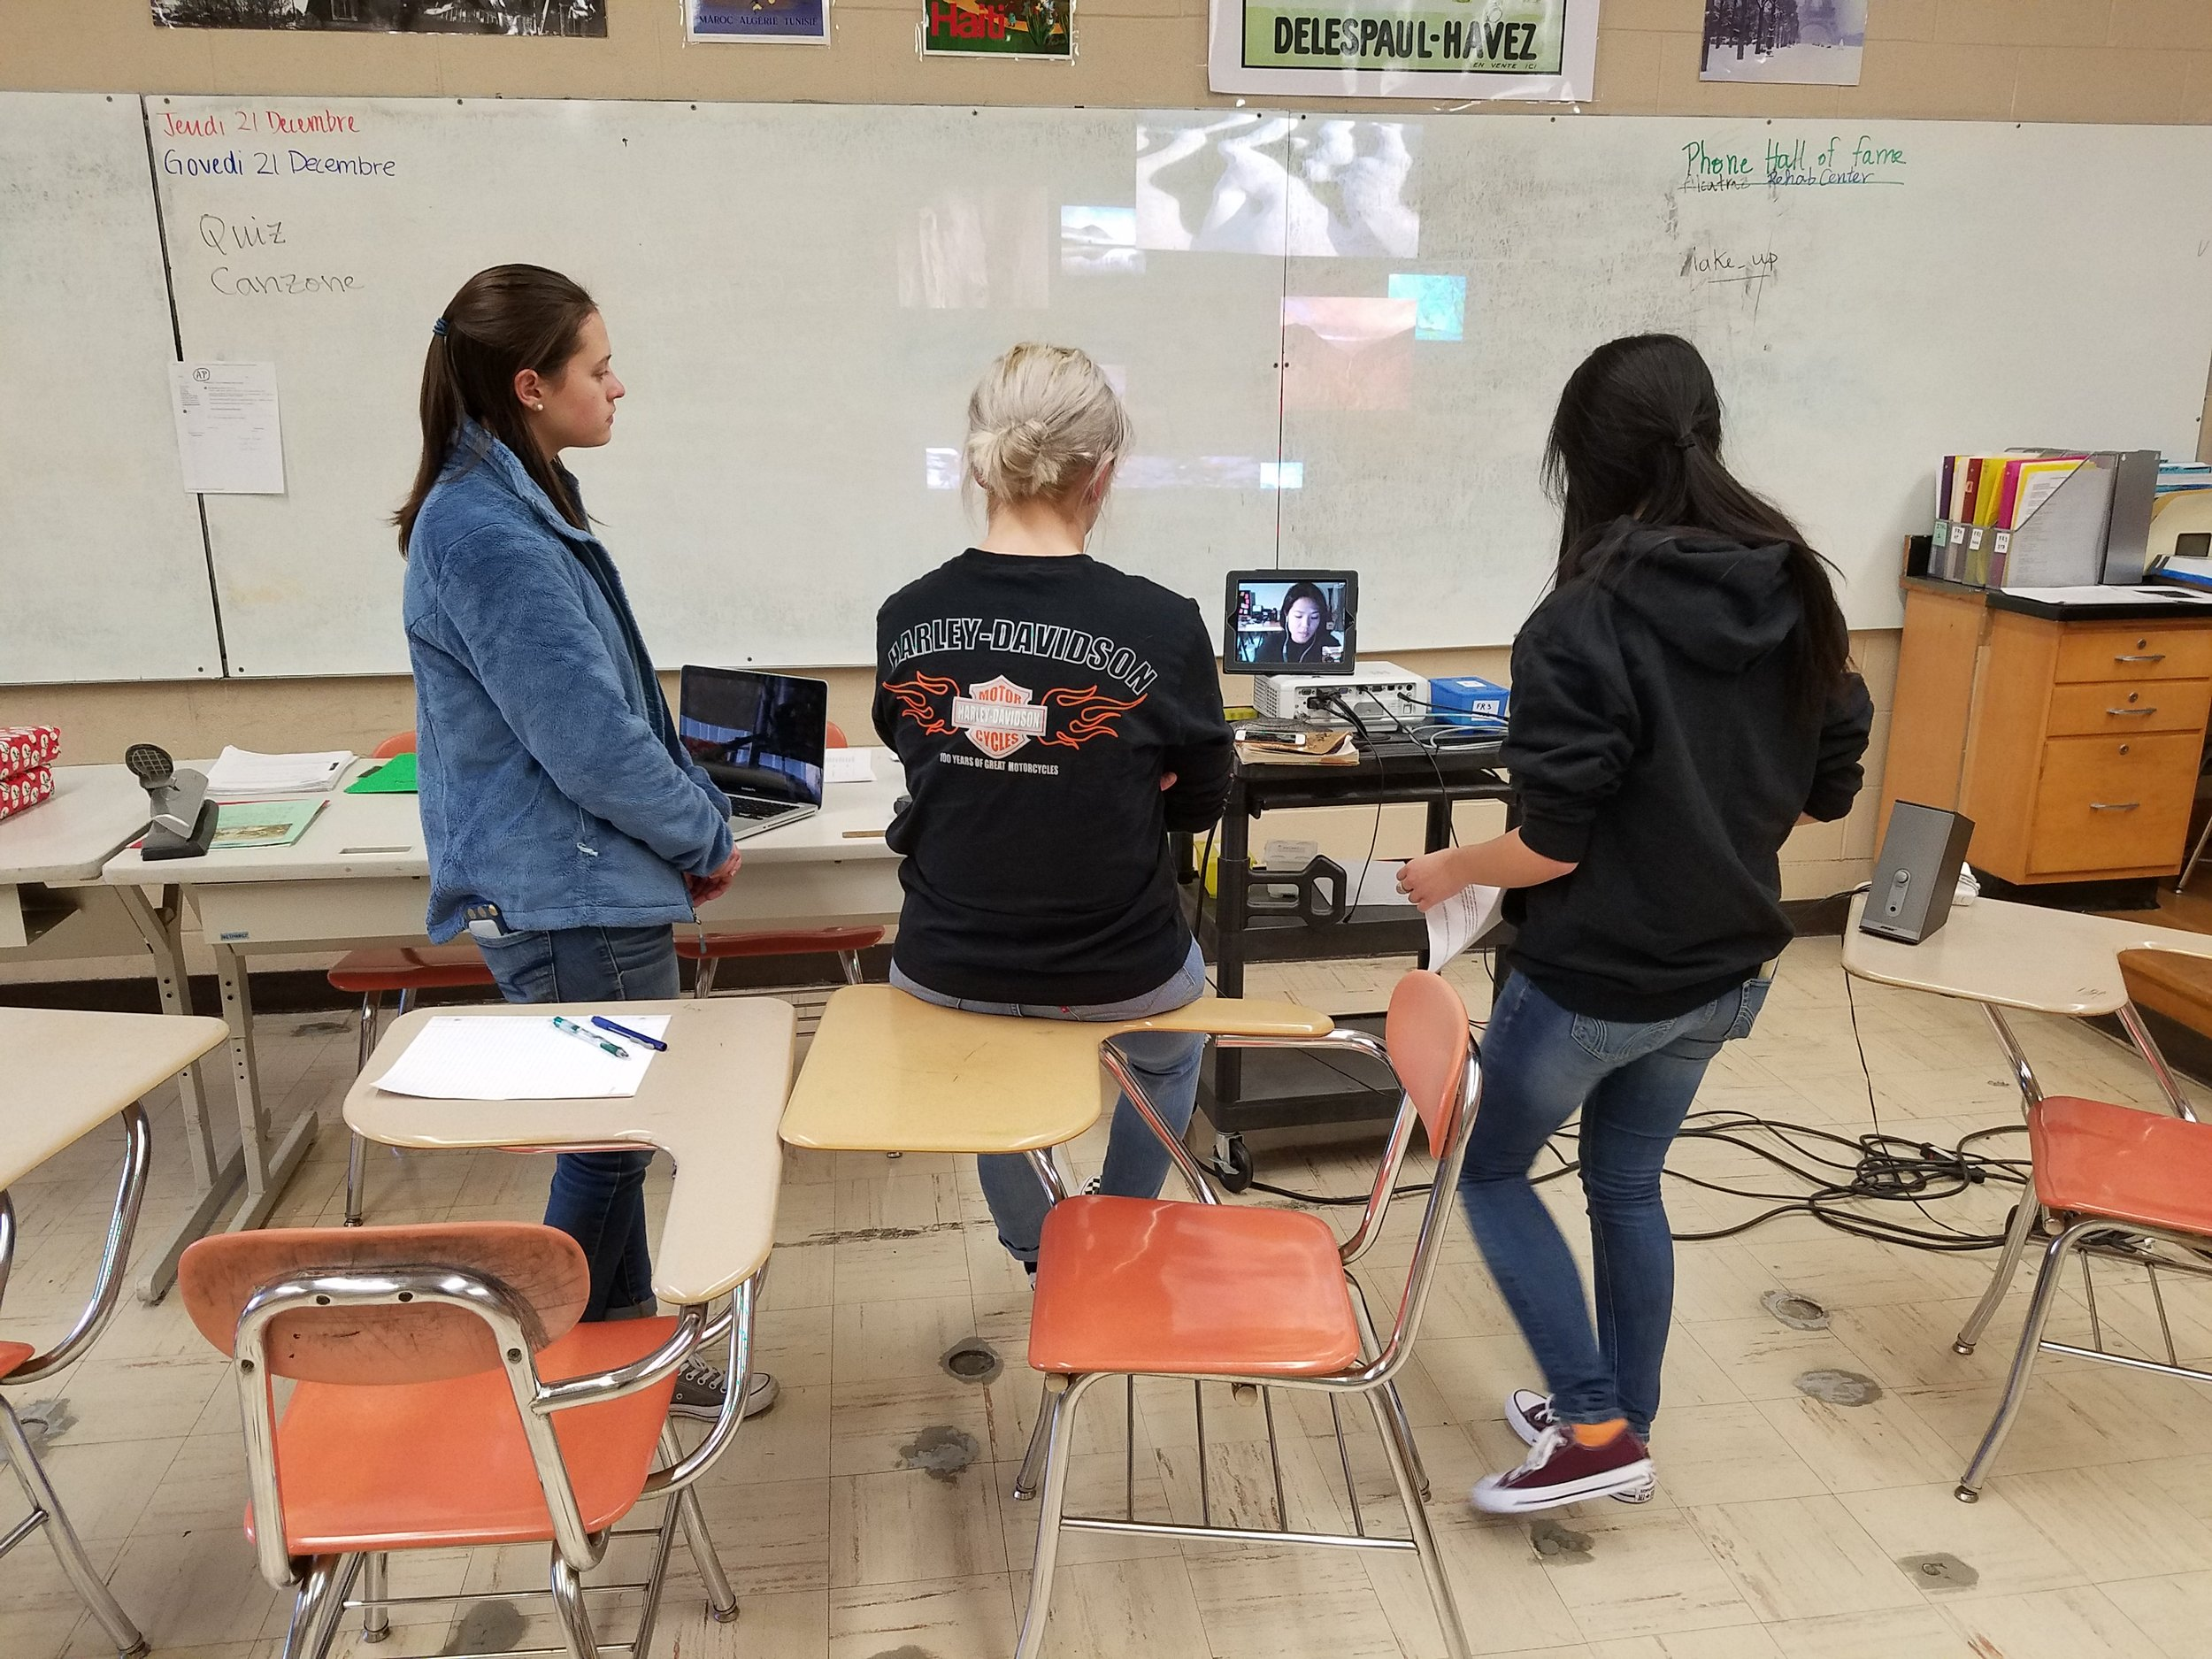 The students skyped with Ms. Tung